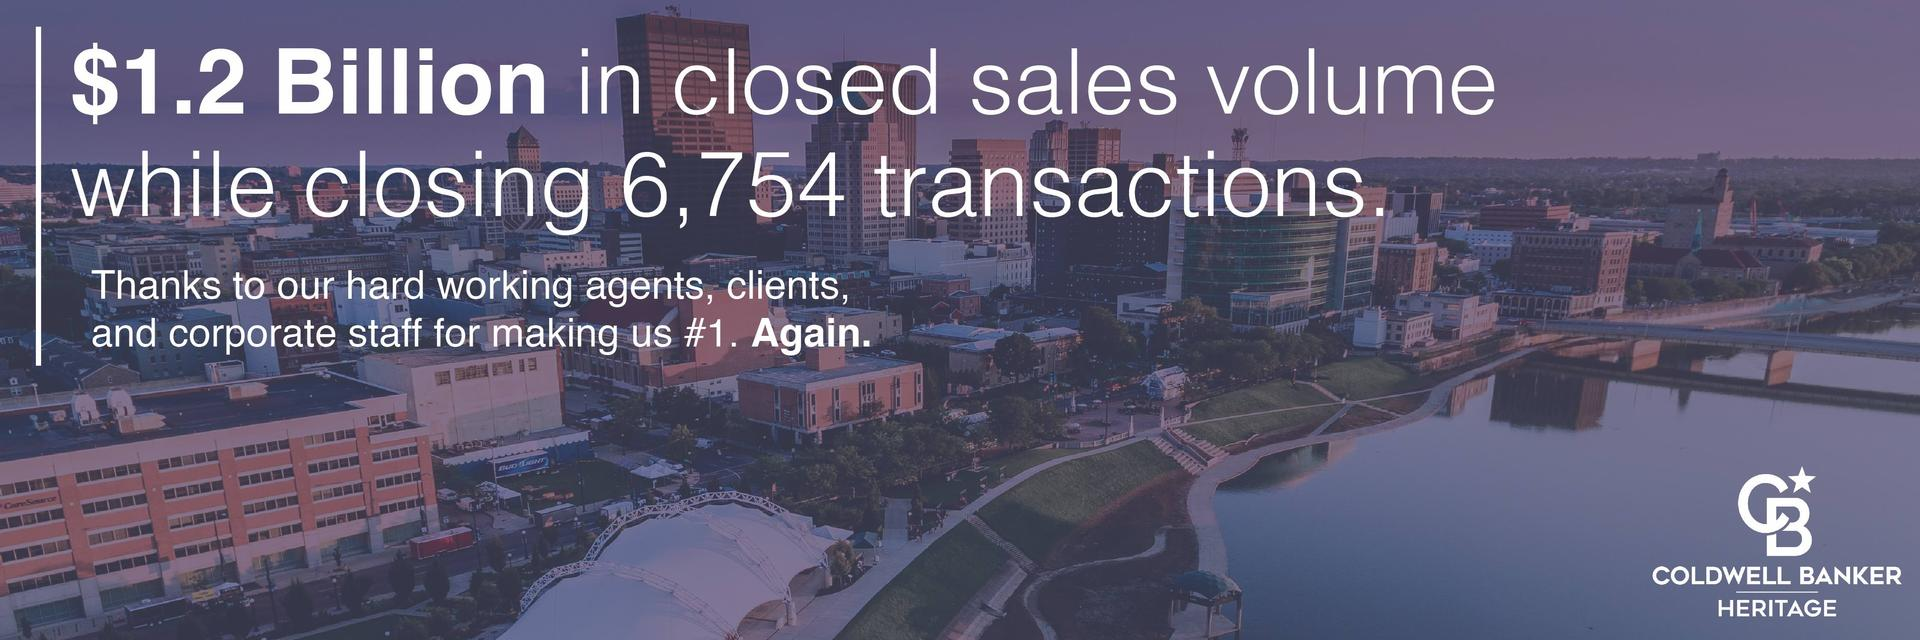 Coldwell Banker Heritage Closes Over $1.2 Billion in Homes Sales Main Photo